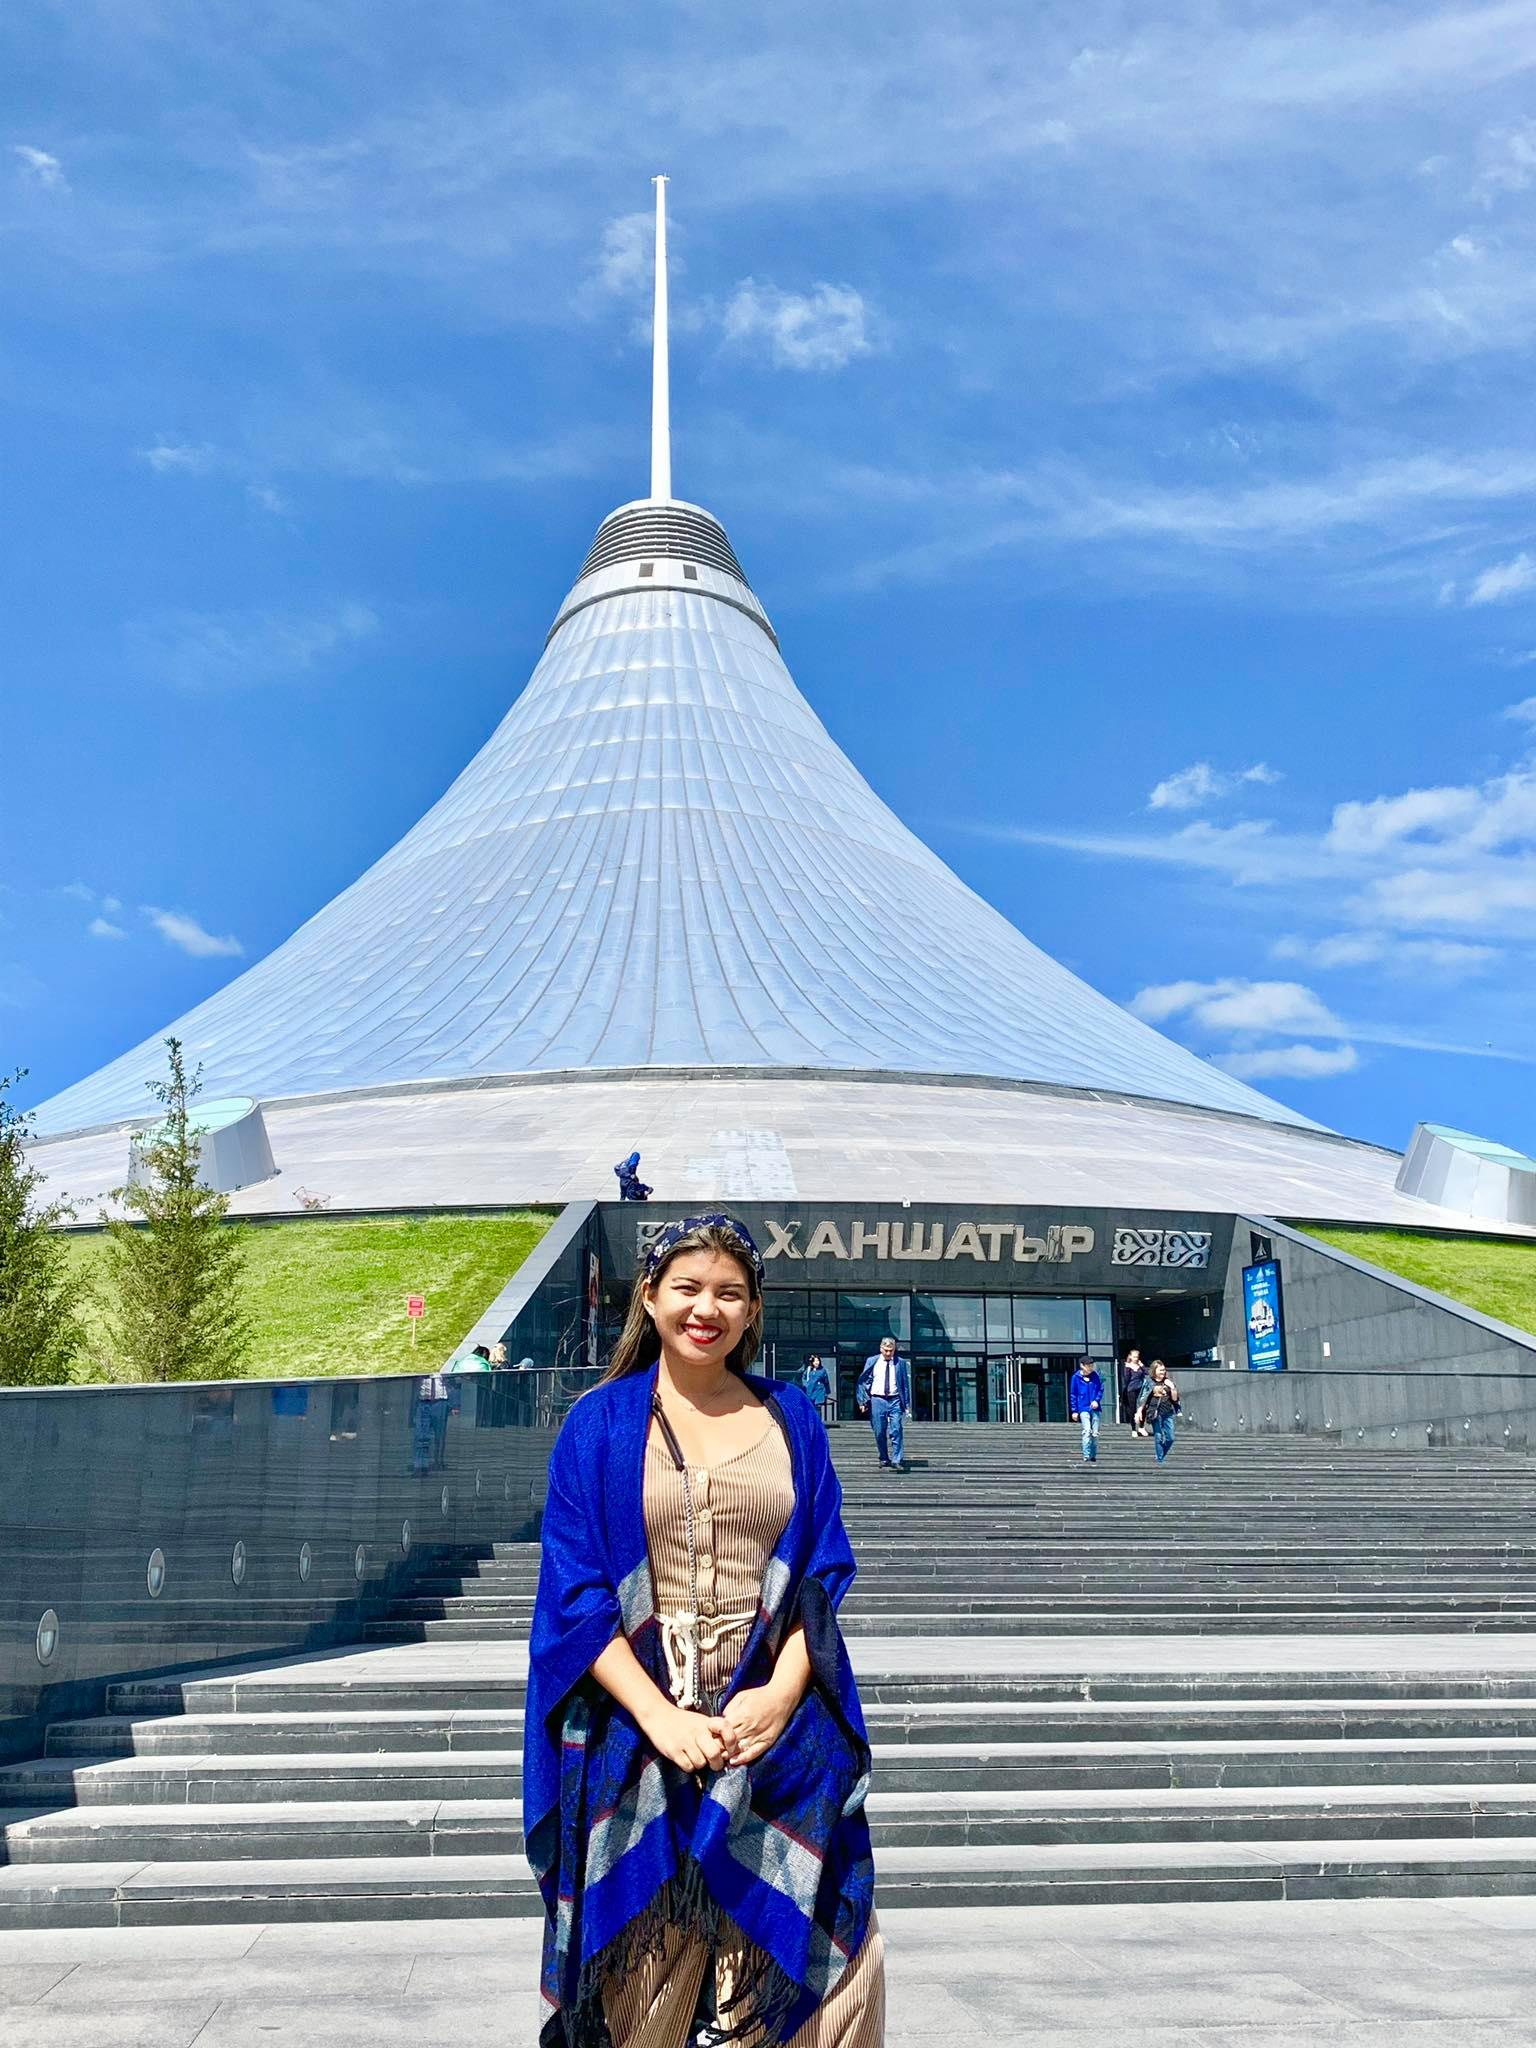 Kach Solo Travels in 2019 Nursultan  Astana - the City of the Future34.jpg